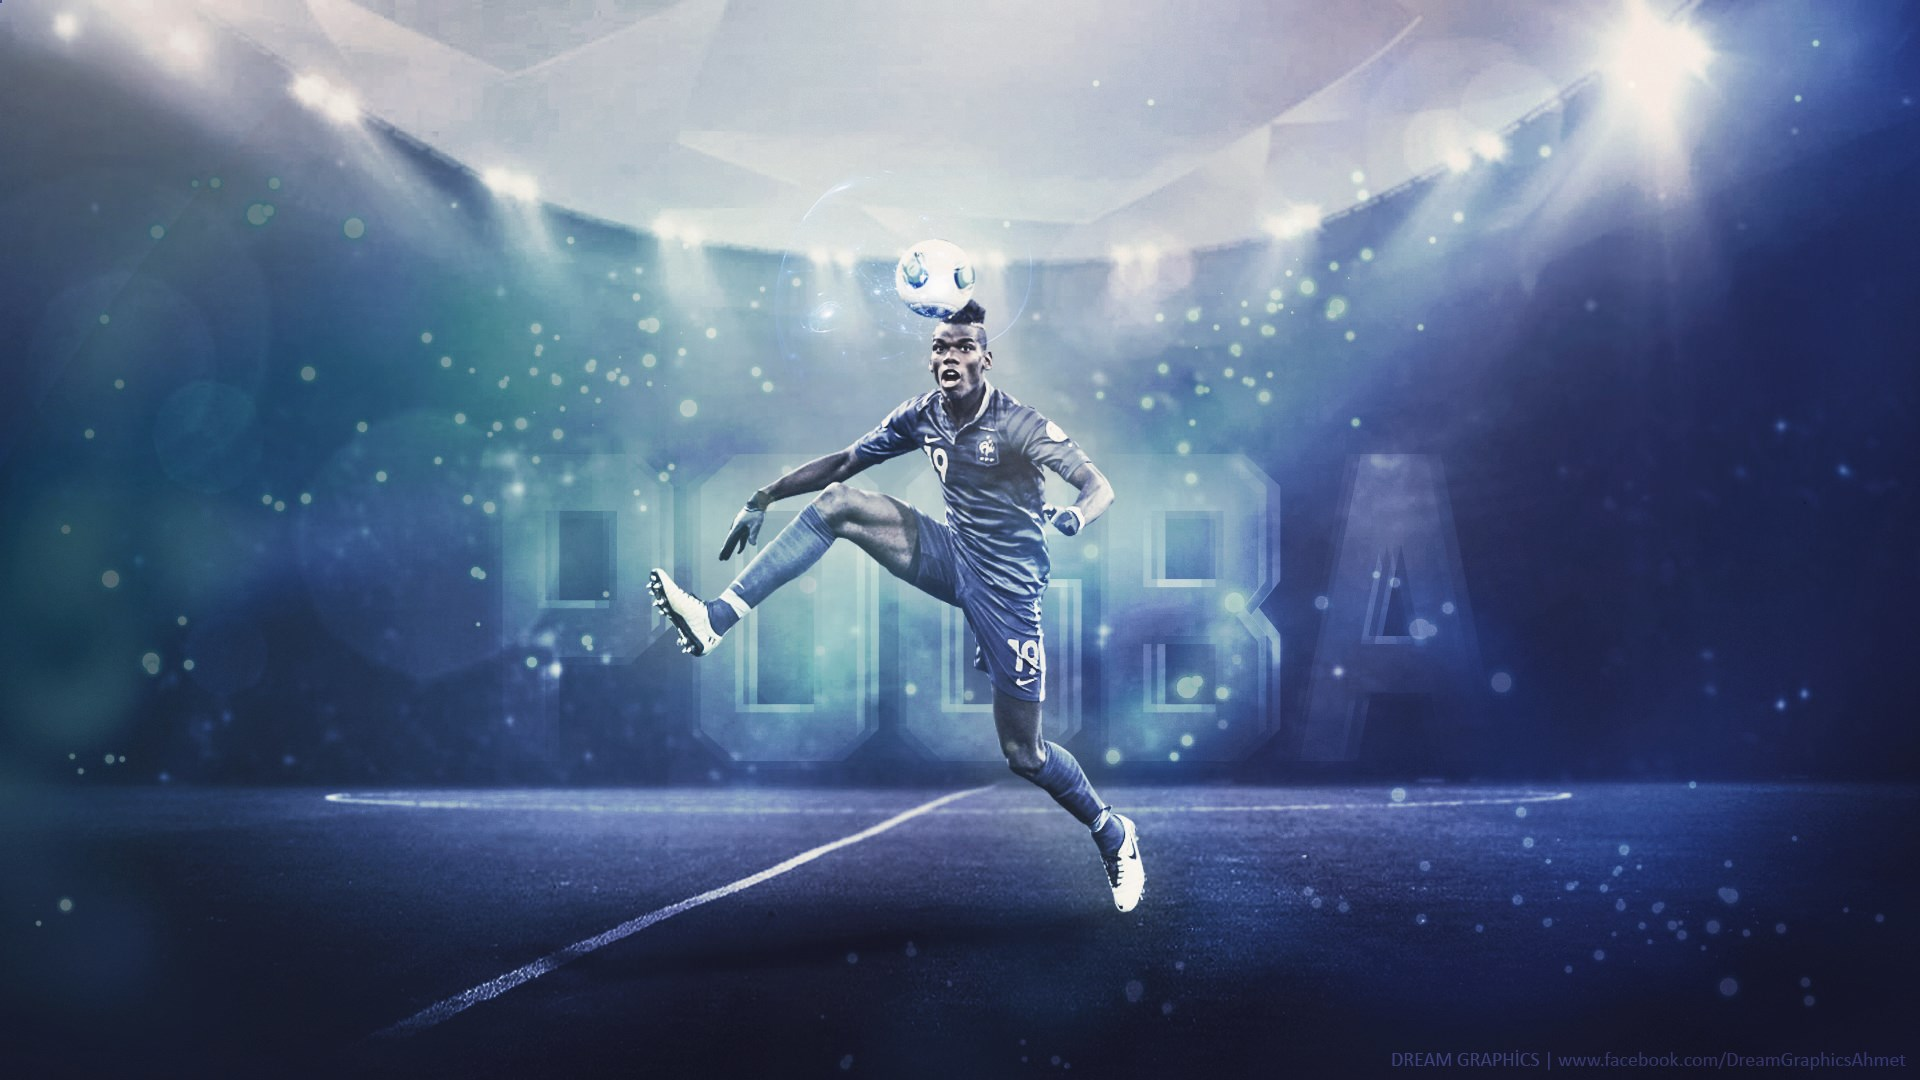 Paul-Pogba-Juventus-Football-HD-jpeg-1920×1080-wallpaper-wpc5807973